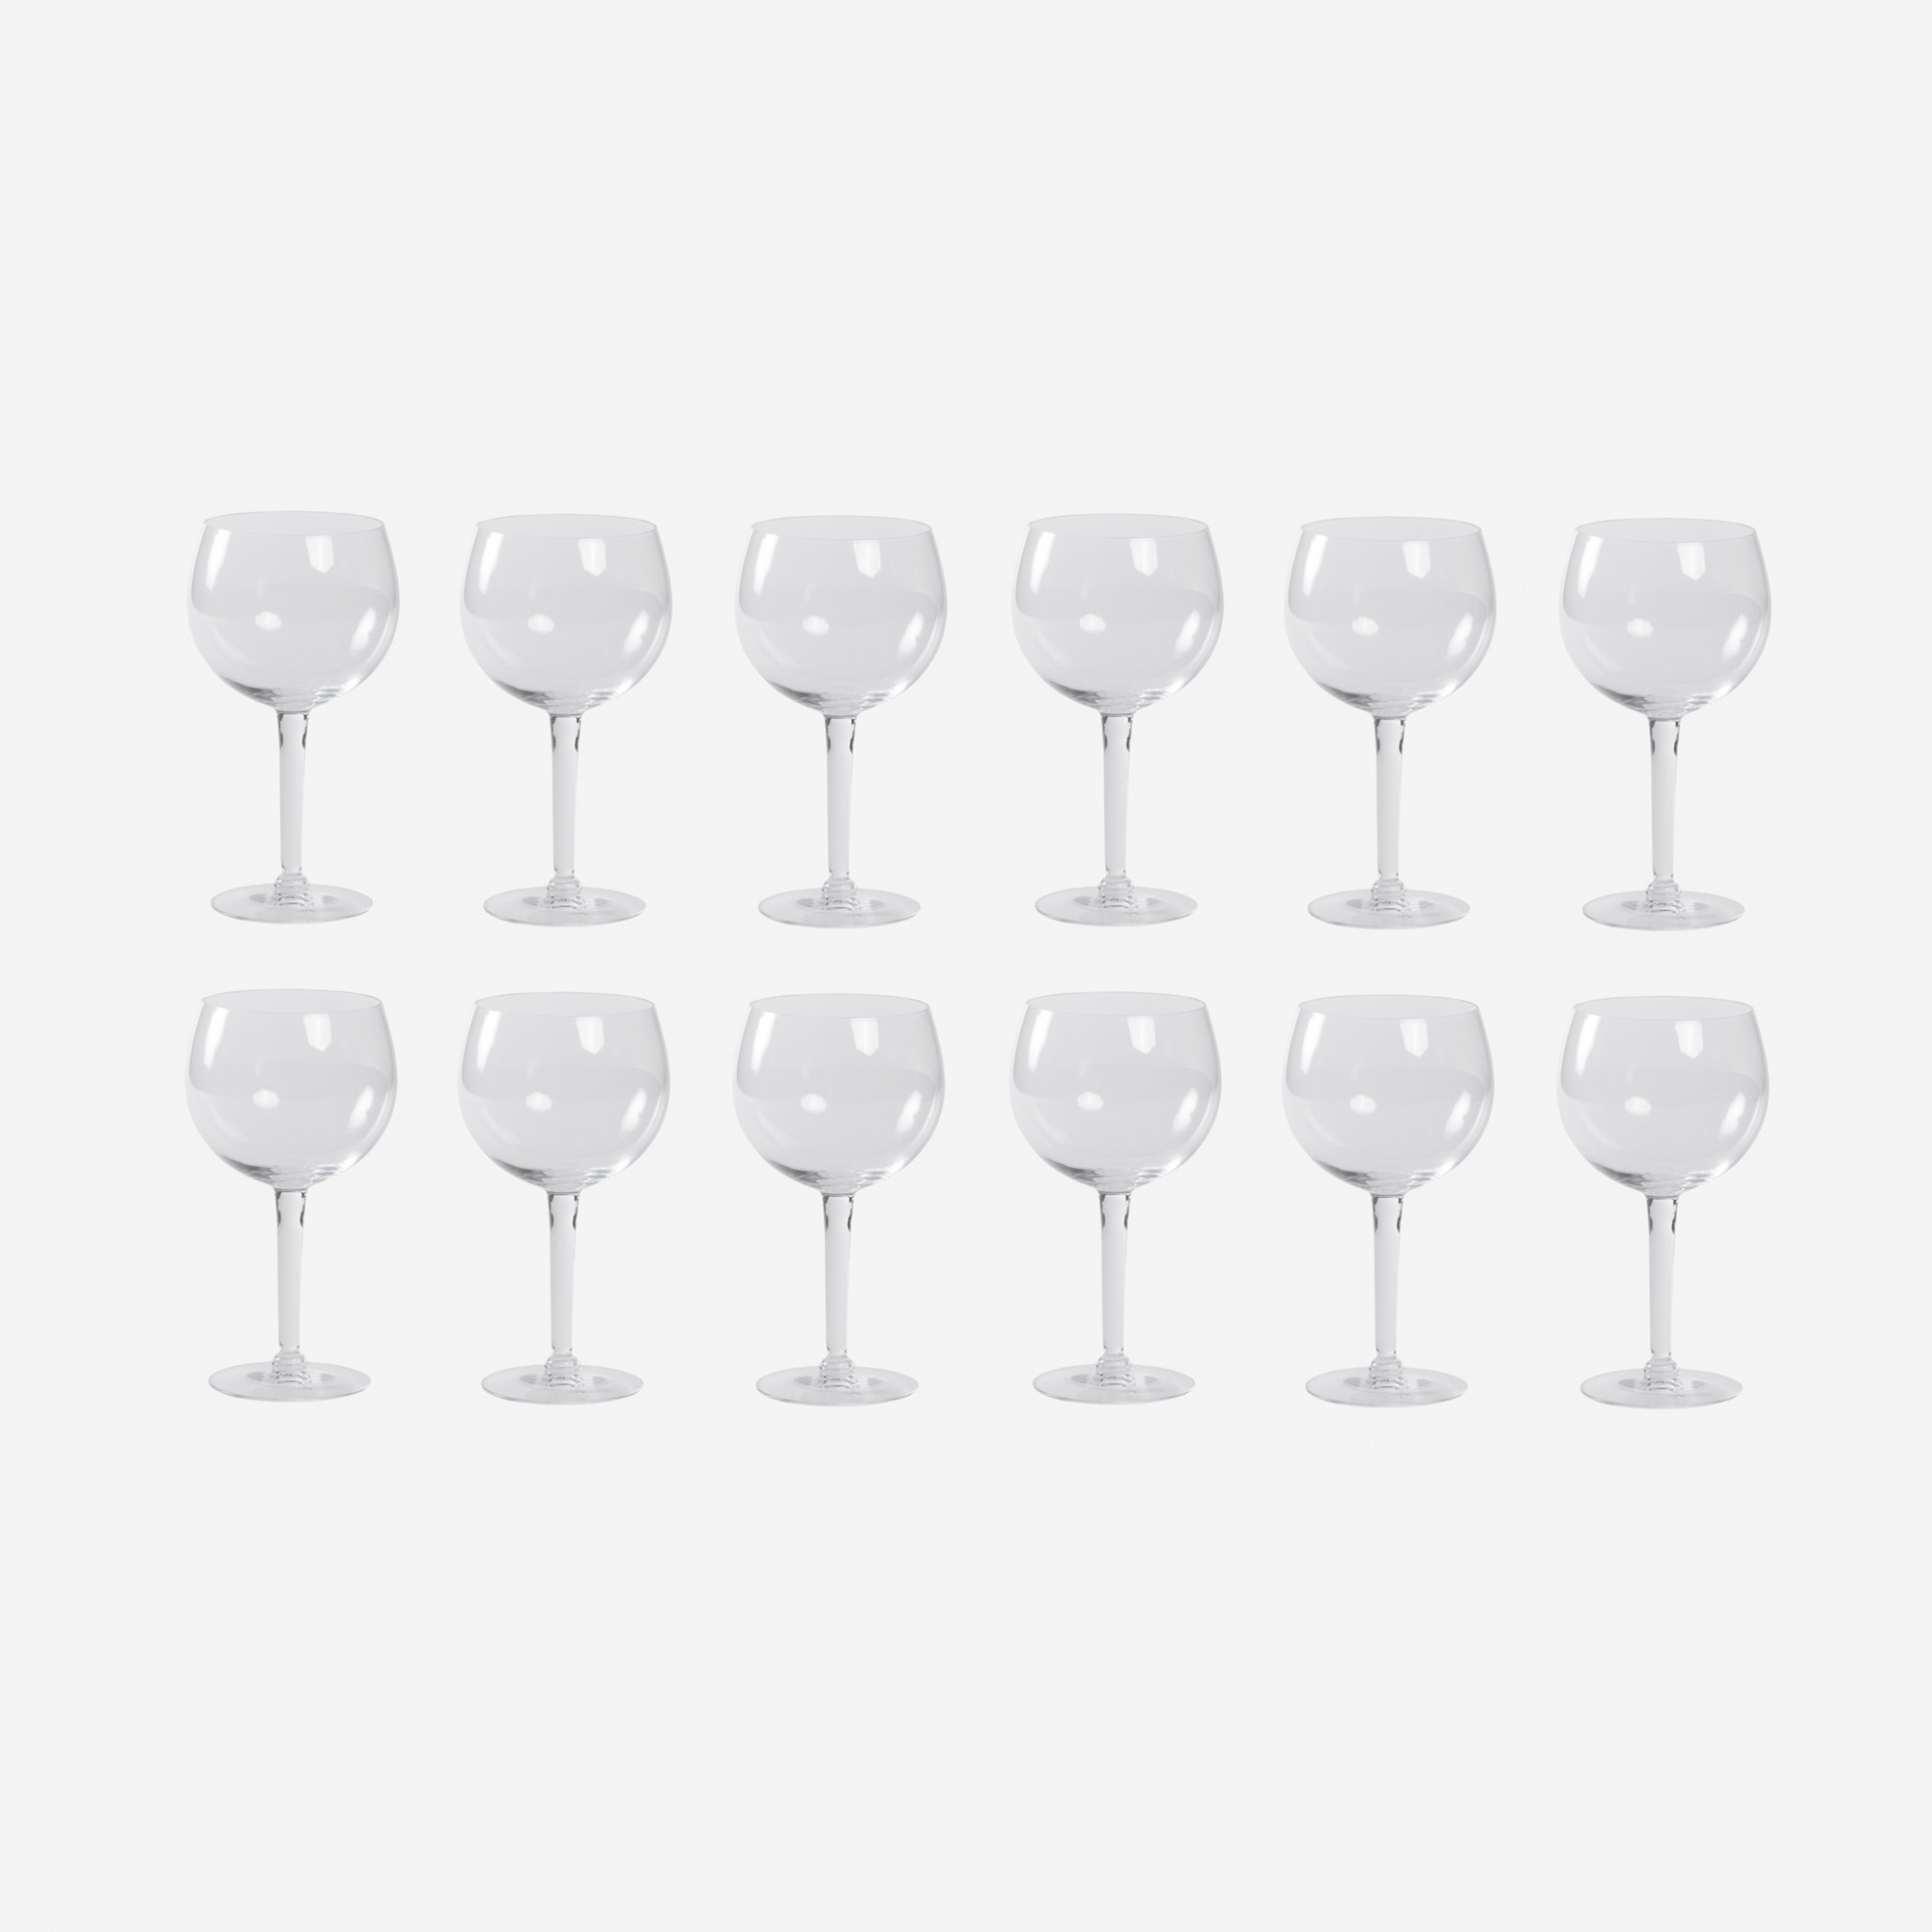 319: Garth and Ada Louise Huxtable / Red Wine glasses from The Four Seasons, set of twelve (1 of 1)